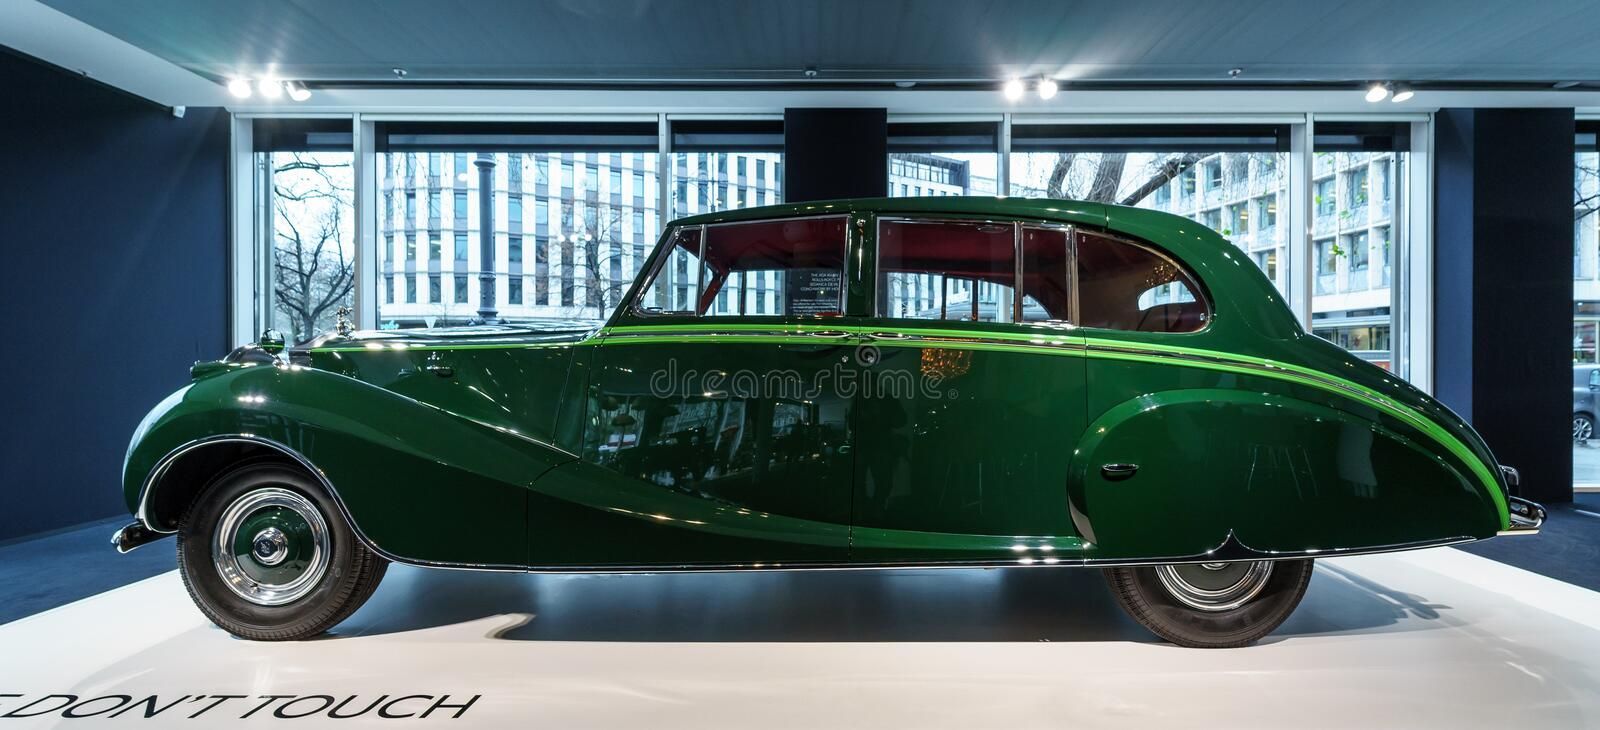 Luxuslimousine auto Rolls-Royce Phantoms IV Sedanca de Ville, 1952 Coachwork durch Böttcher von London stockfoto